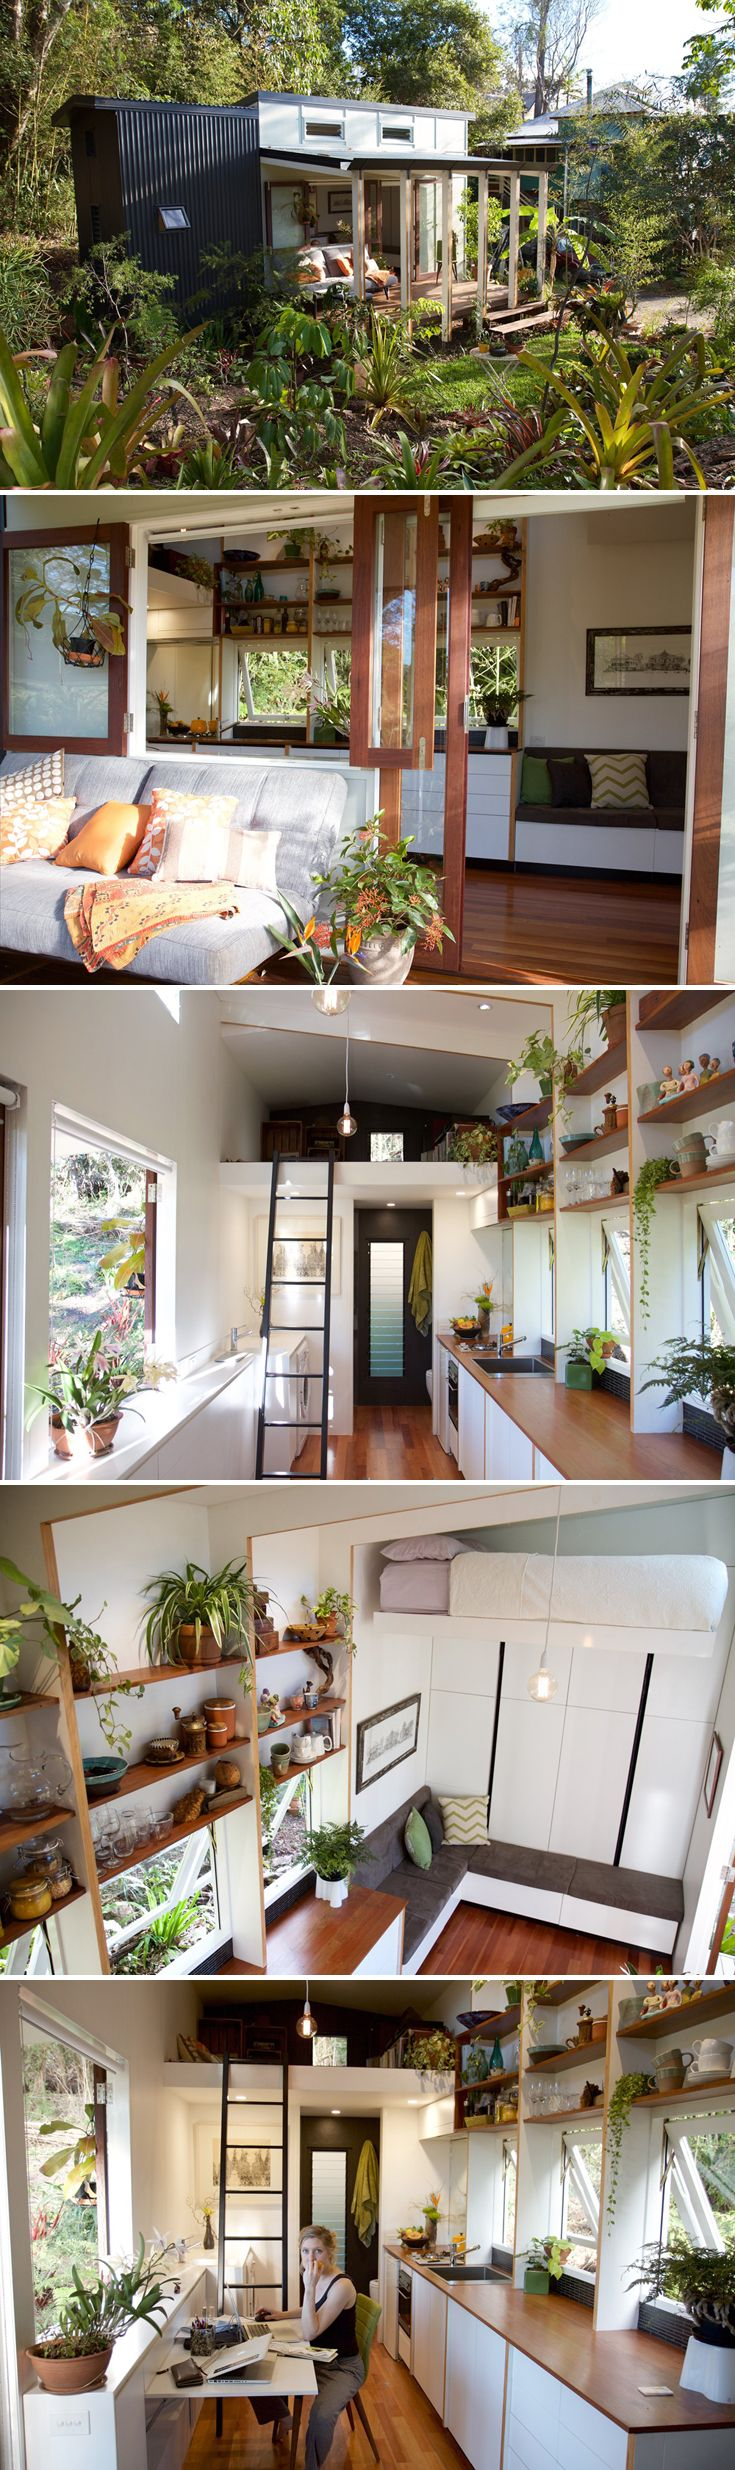 Best 25+ Small houses ideas on Pinterest | Small homes, Tiny homes ...